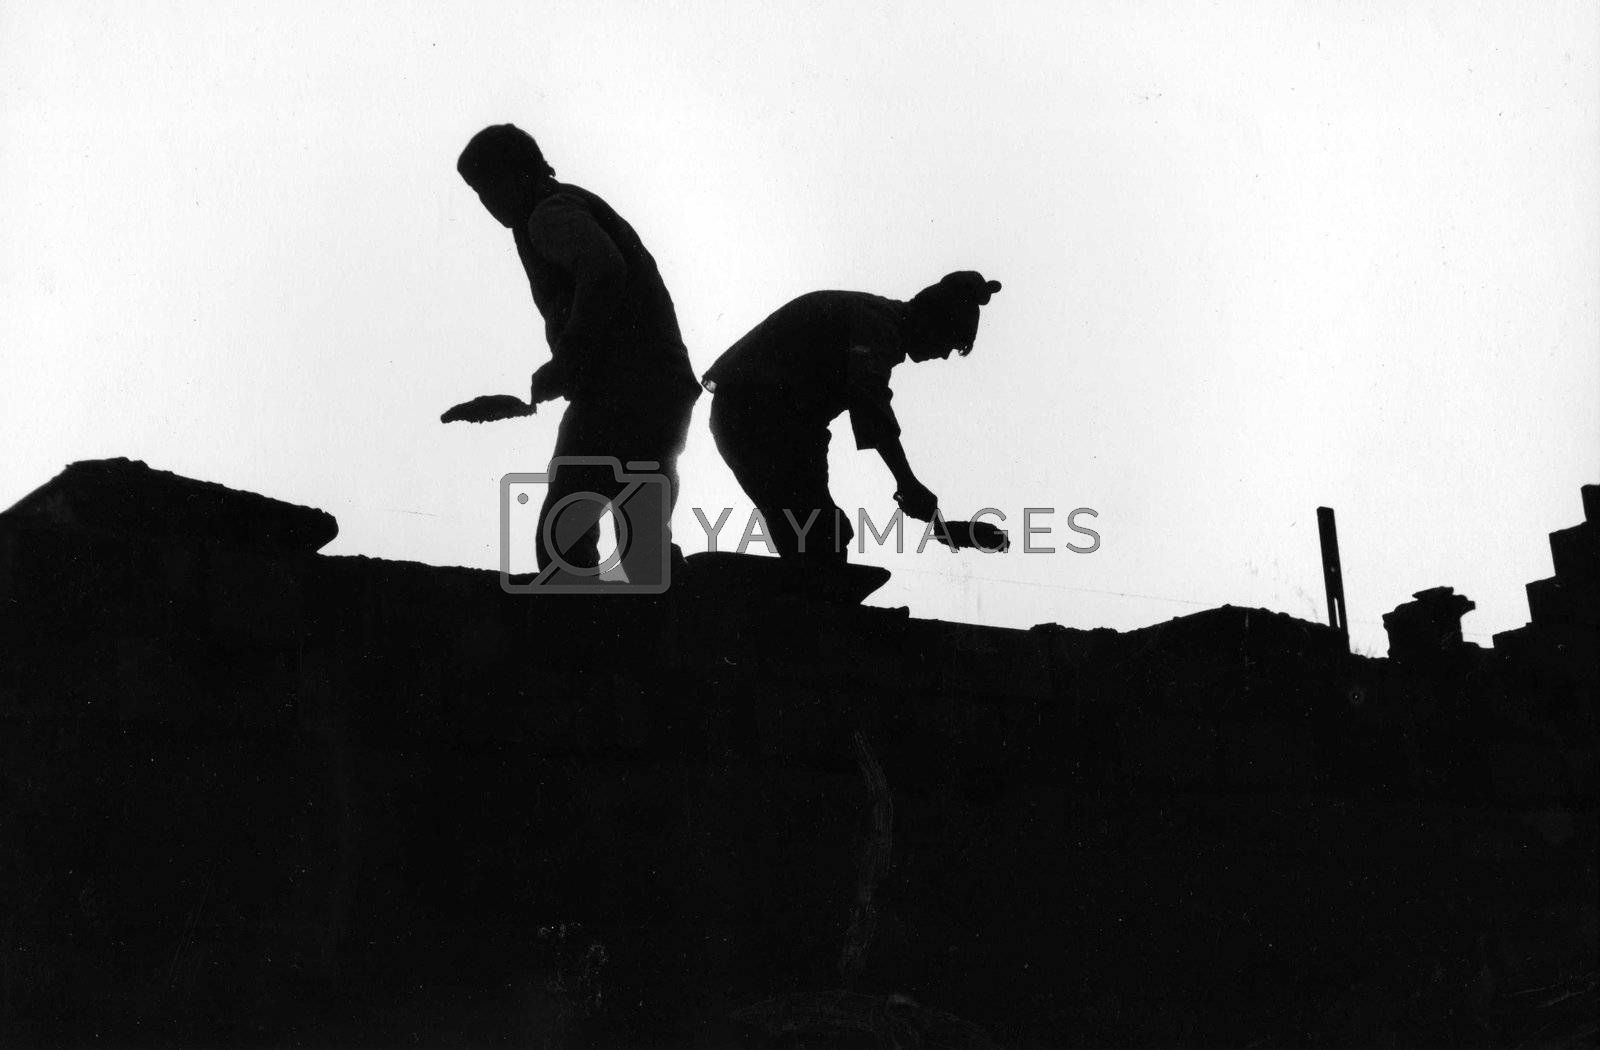 Two Masons working silhouettes against the sky by athomedad